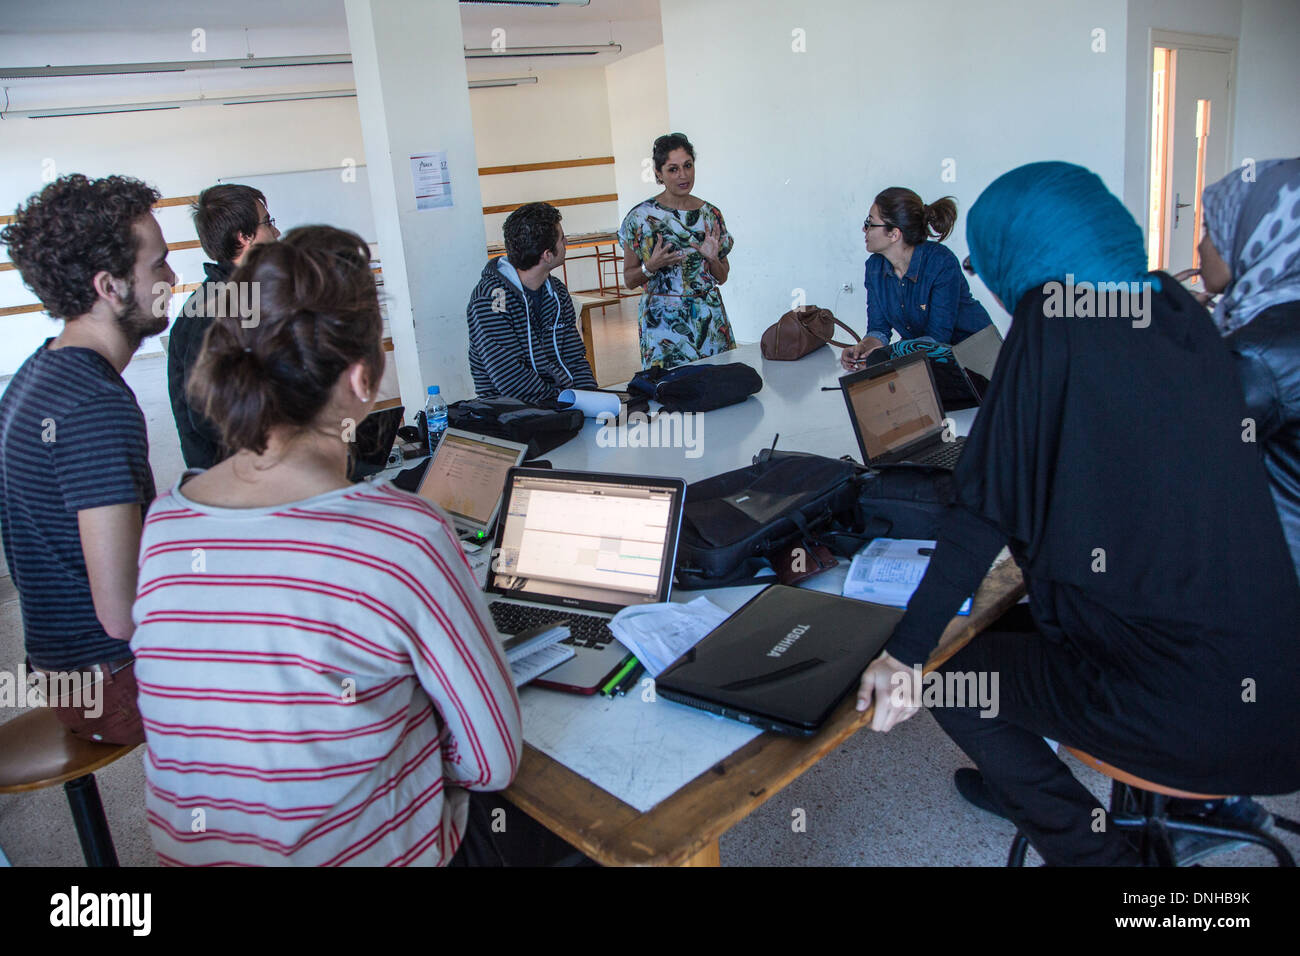 ESTELLE FORGET WITH A GROUP OF STUDENTS PARTICIPATING IN THE THIRD ANNUAL ERGAPOLIS COMPETITION, NATIONAL SCHOOL OF ARCHITECTURE (ENA), RABAT, MOROCCO, AFRICA - Stock Image